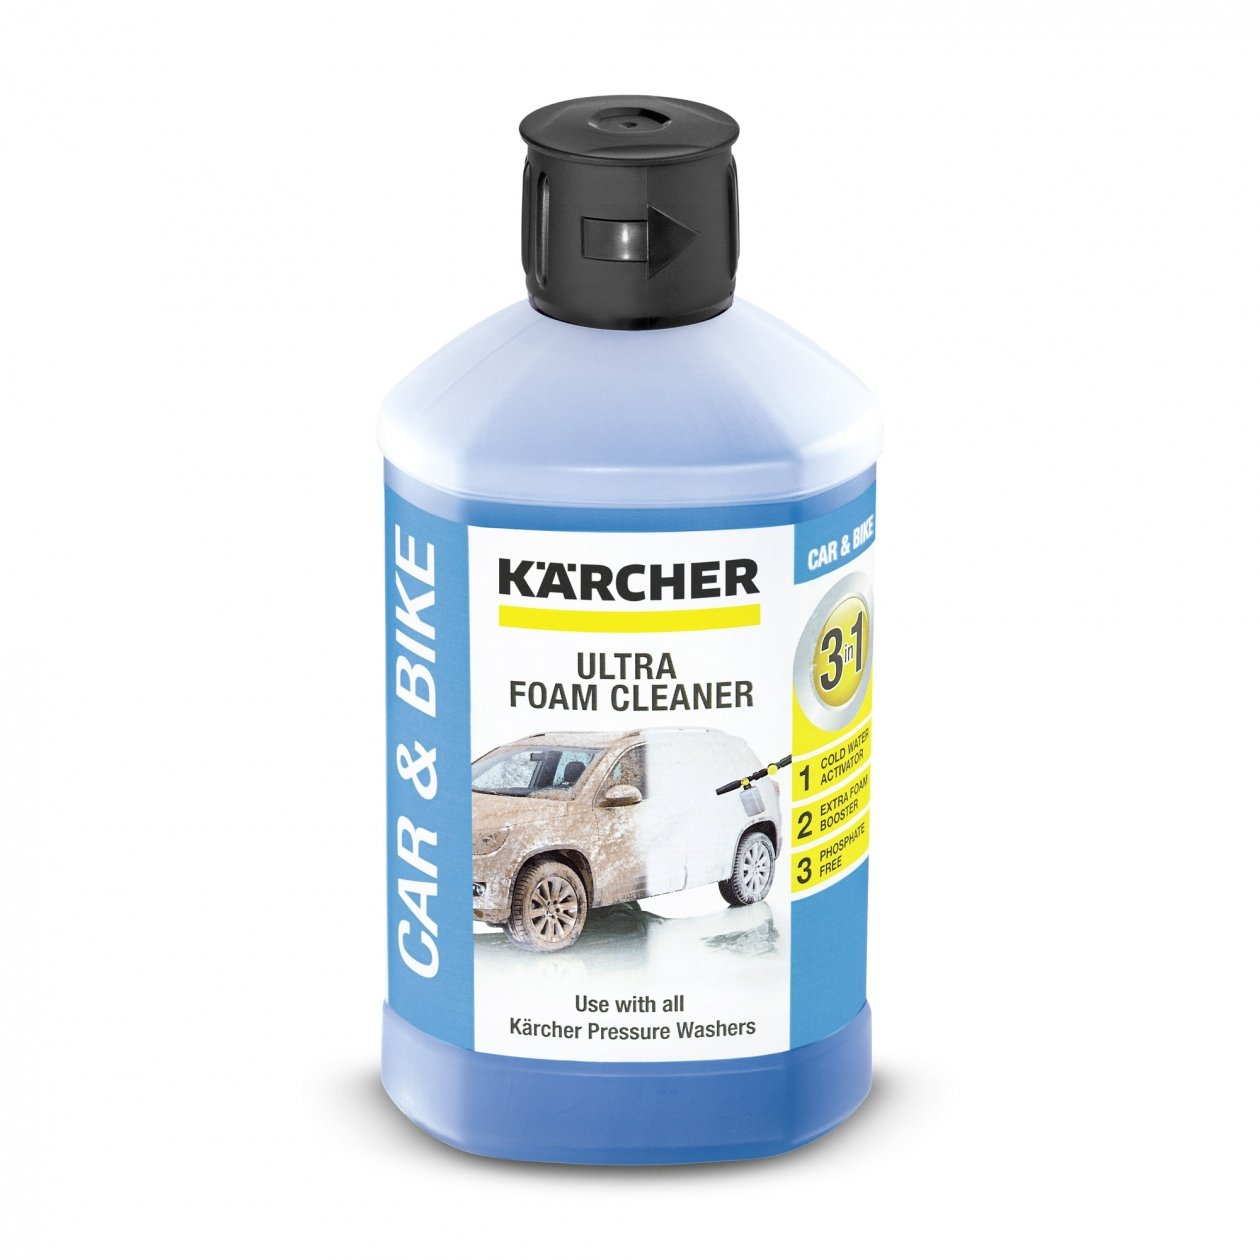 Karcher Ultra Foam Cleaner 3 v 1